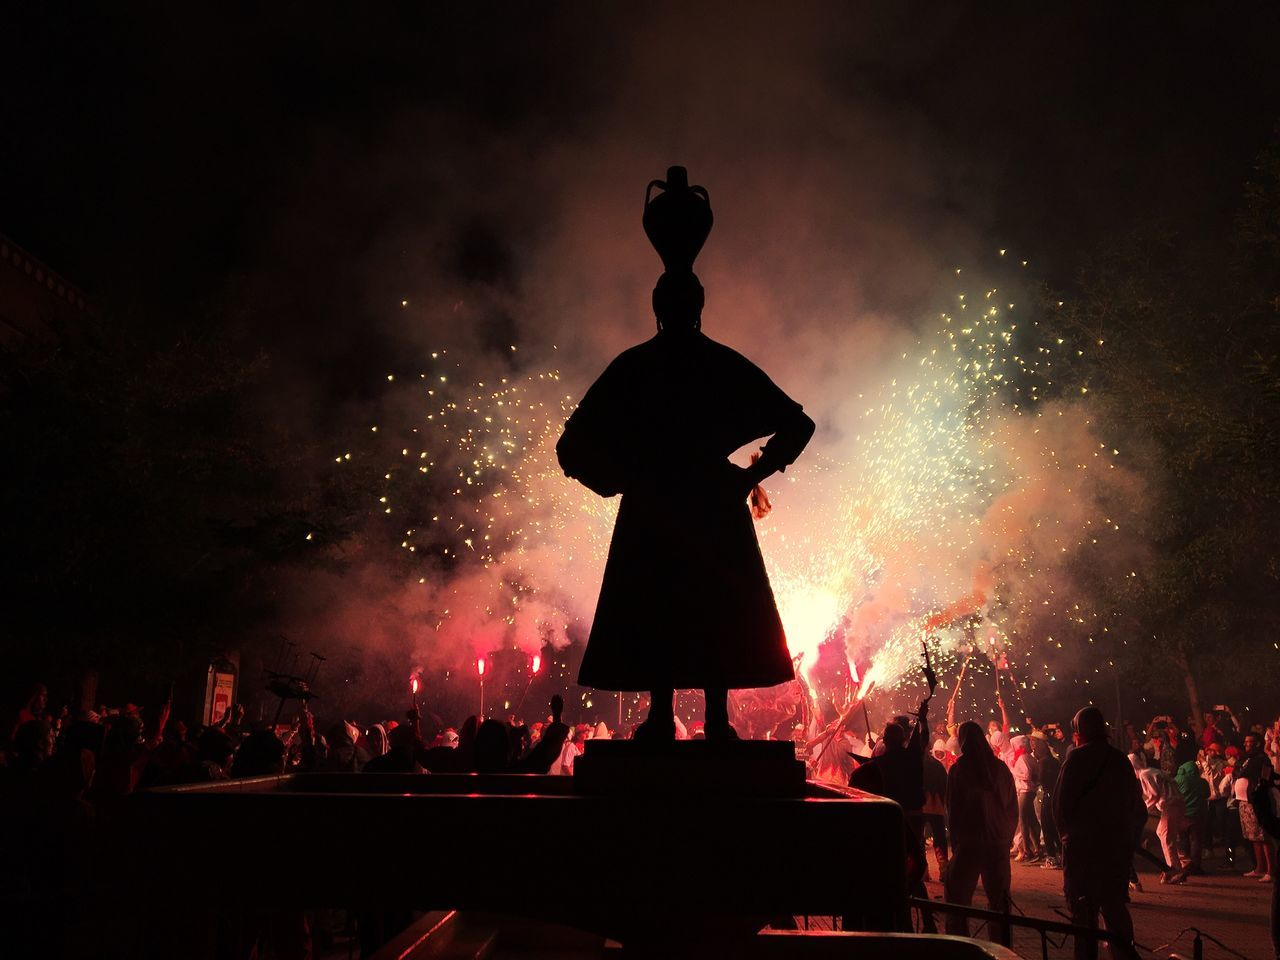 night arts culture and entertainment real people illuminated men large group of people performance crowd outdoors sky Fireworks correfocs Fraga